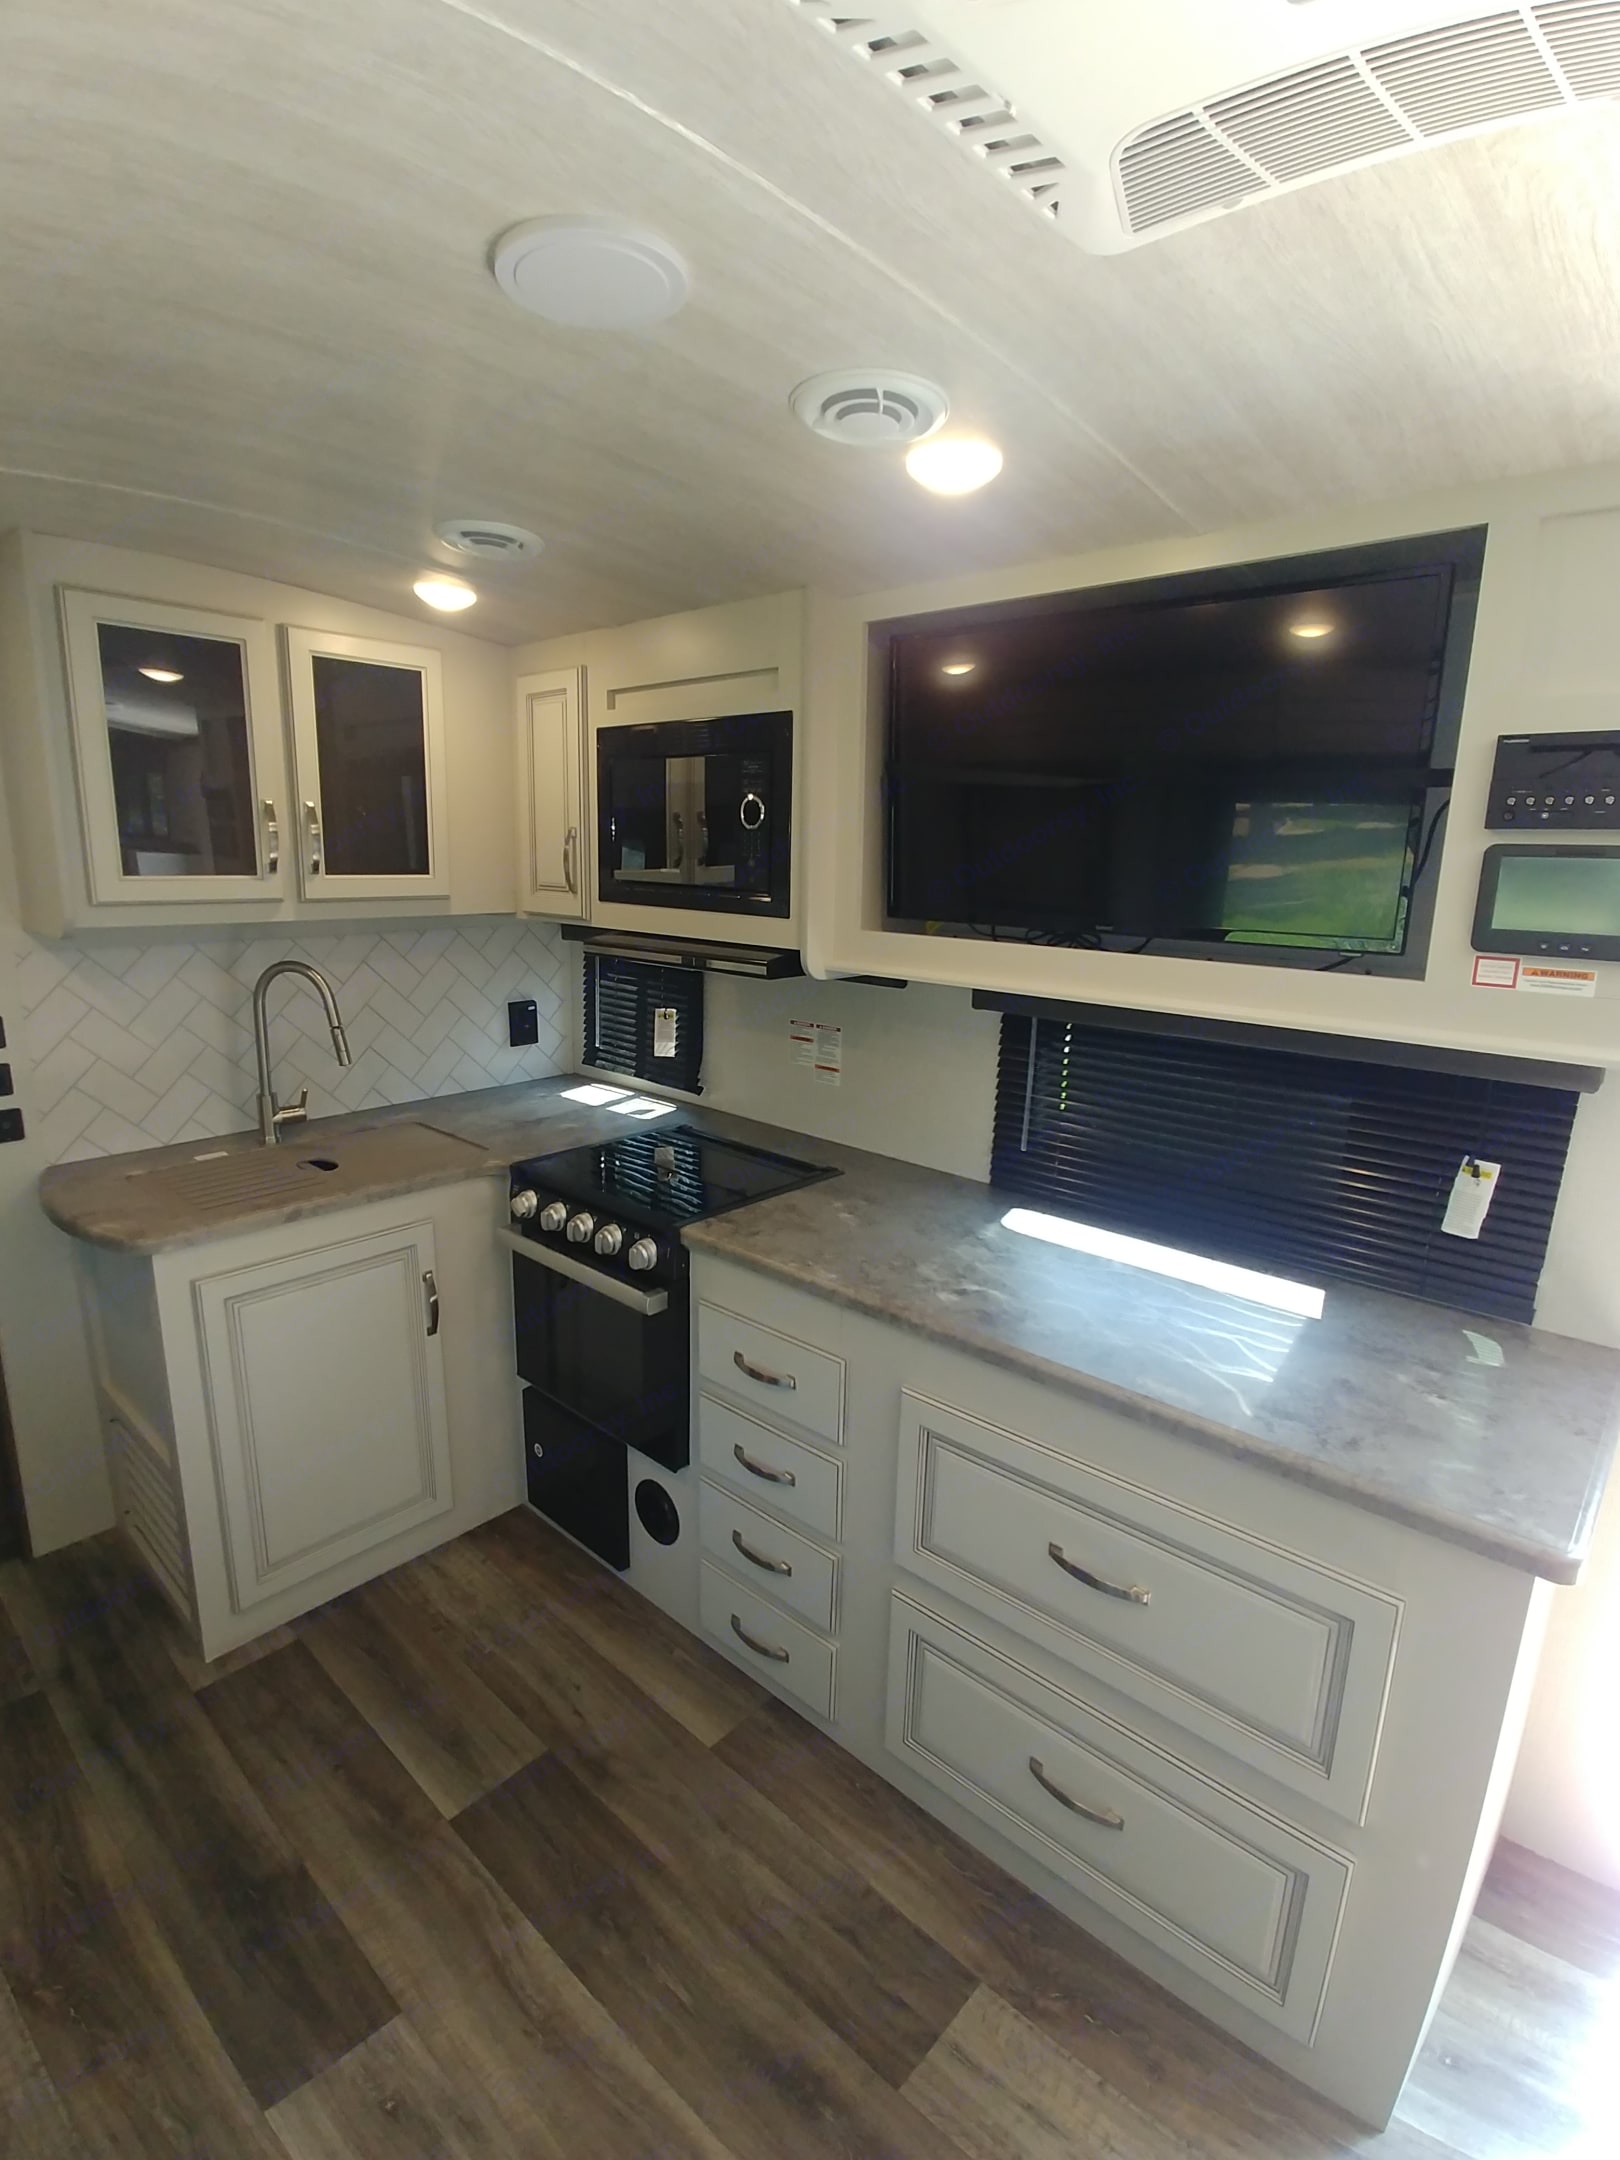 Kitchen with TV/DVD player, microwave, 3 burner stove, oven and sink with plenty of storage.. Keystone Cougar Half-Ton 2021